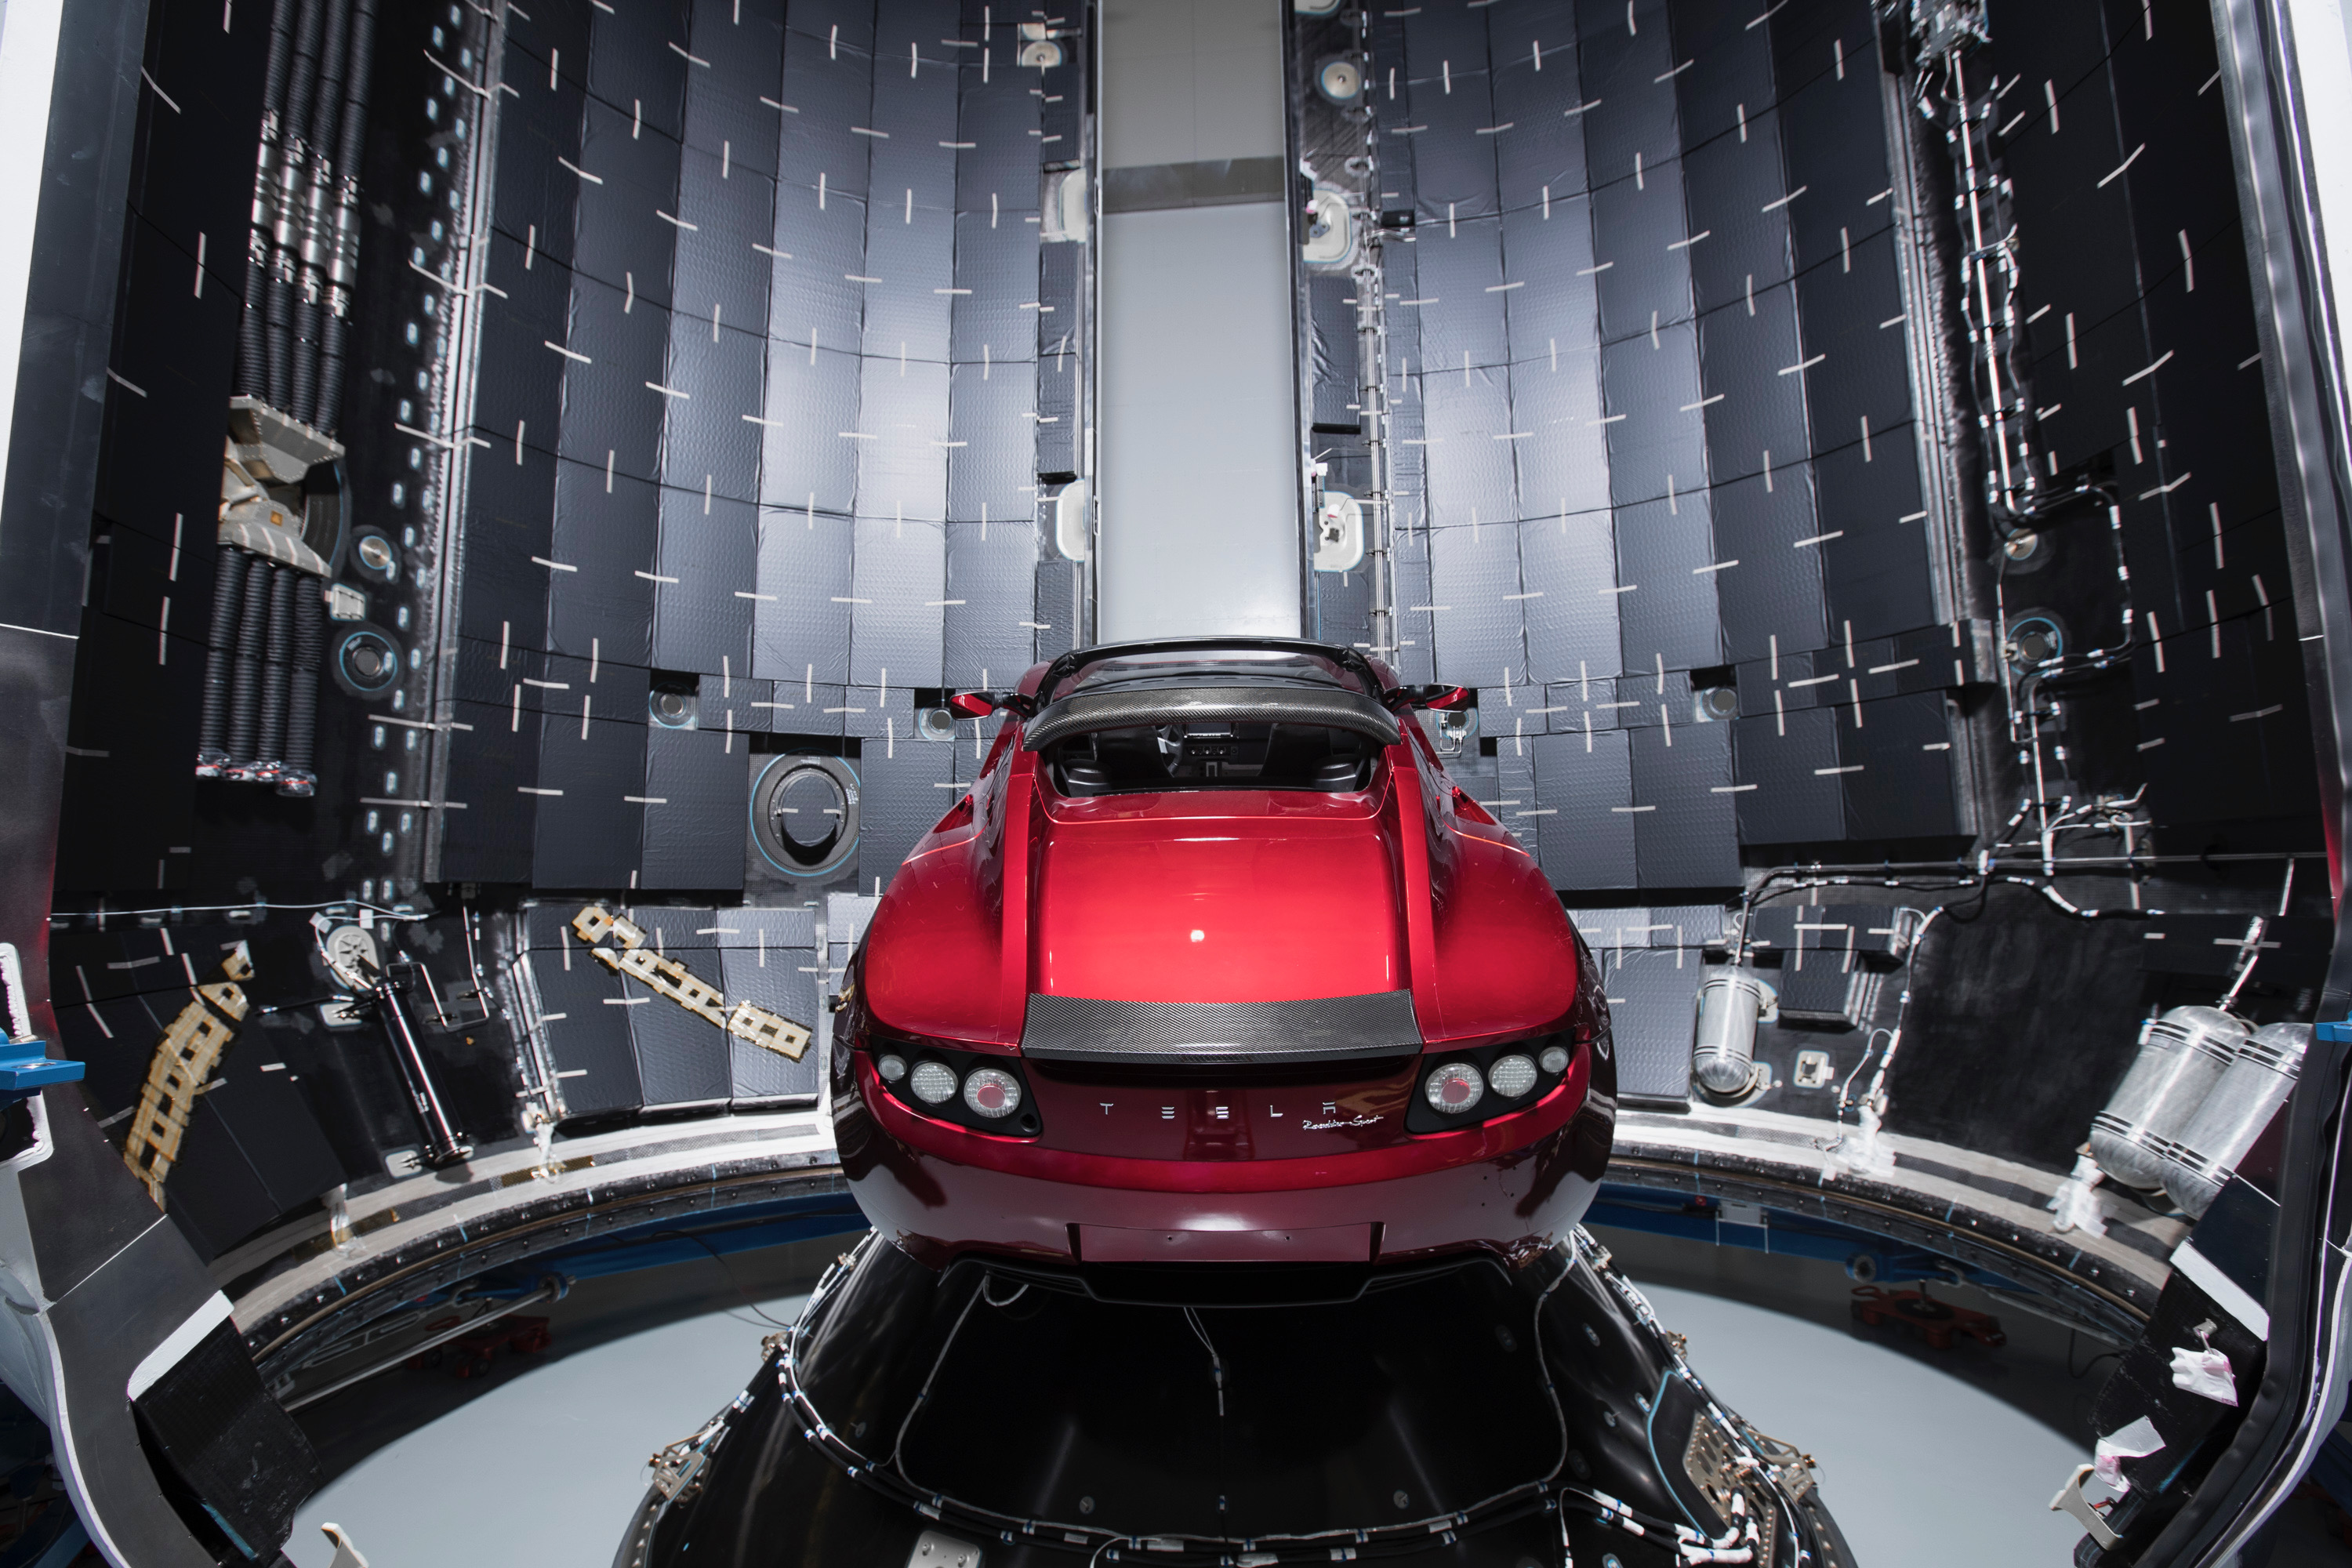 Space X Tesla Roadster Waiting For Space, HD Cars, 4k ...